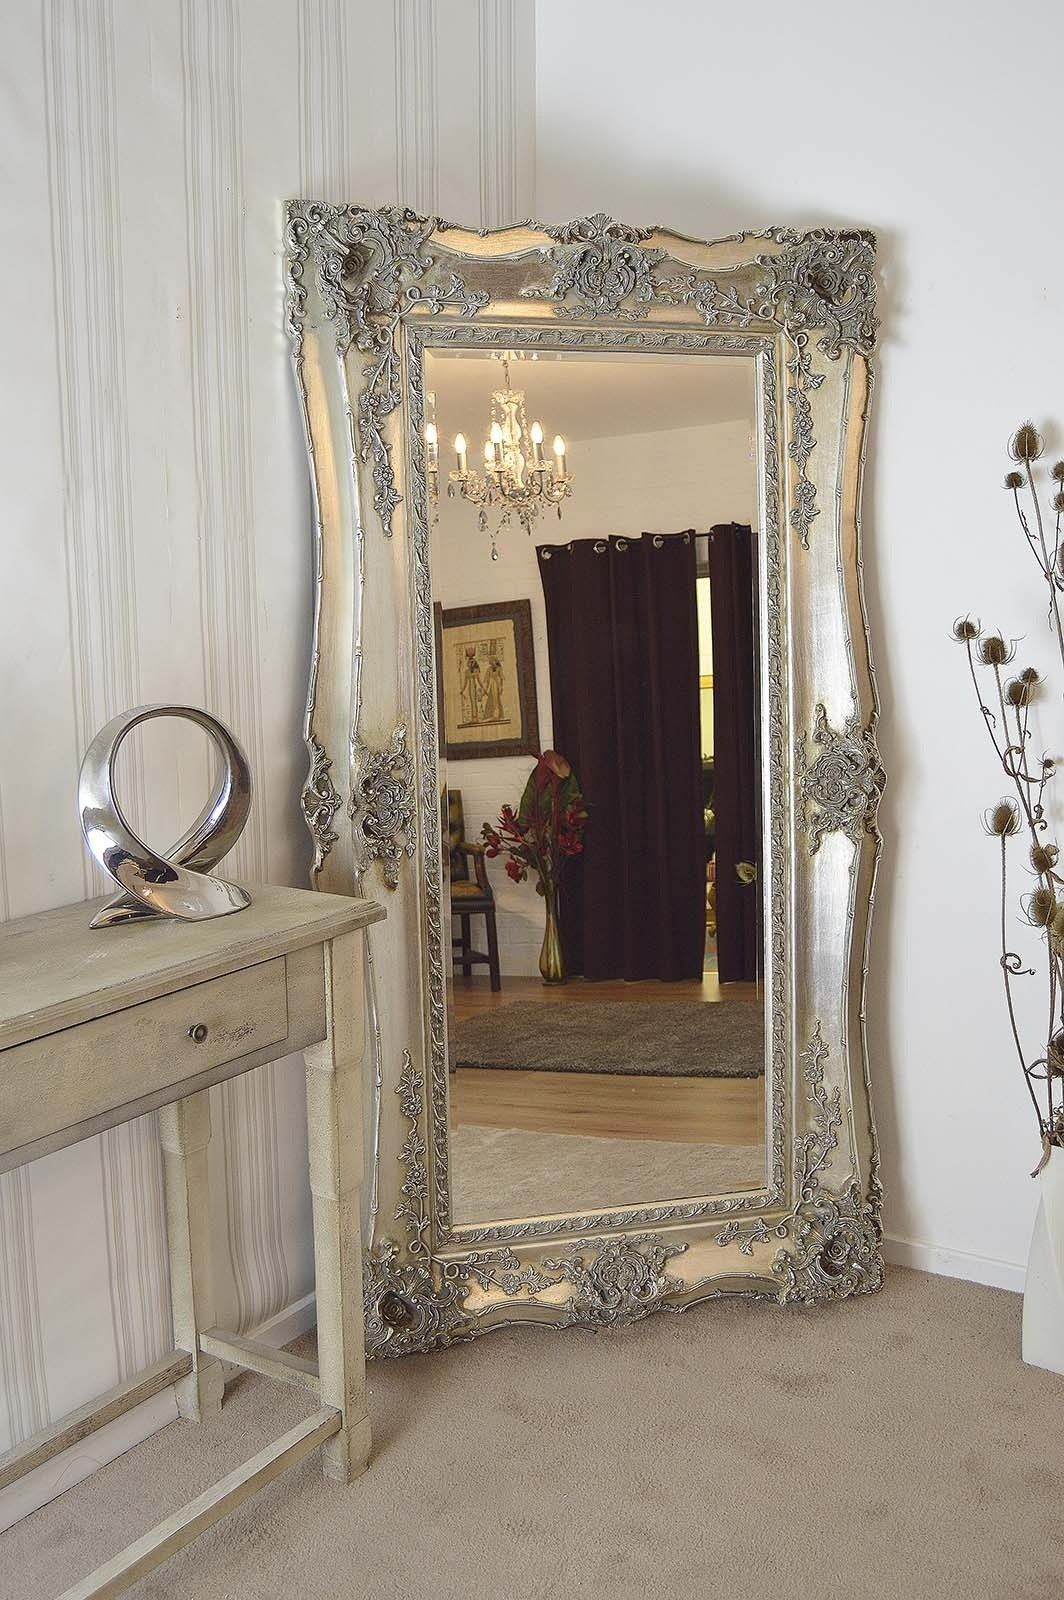 Very best ornate full length mirror - Google Search | Furniture turnover  LN39